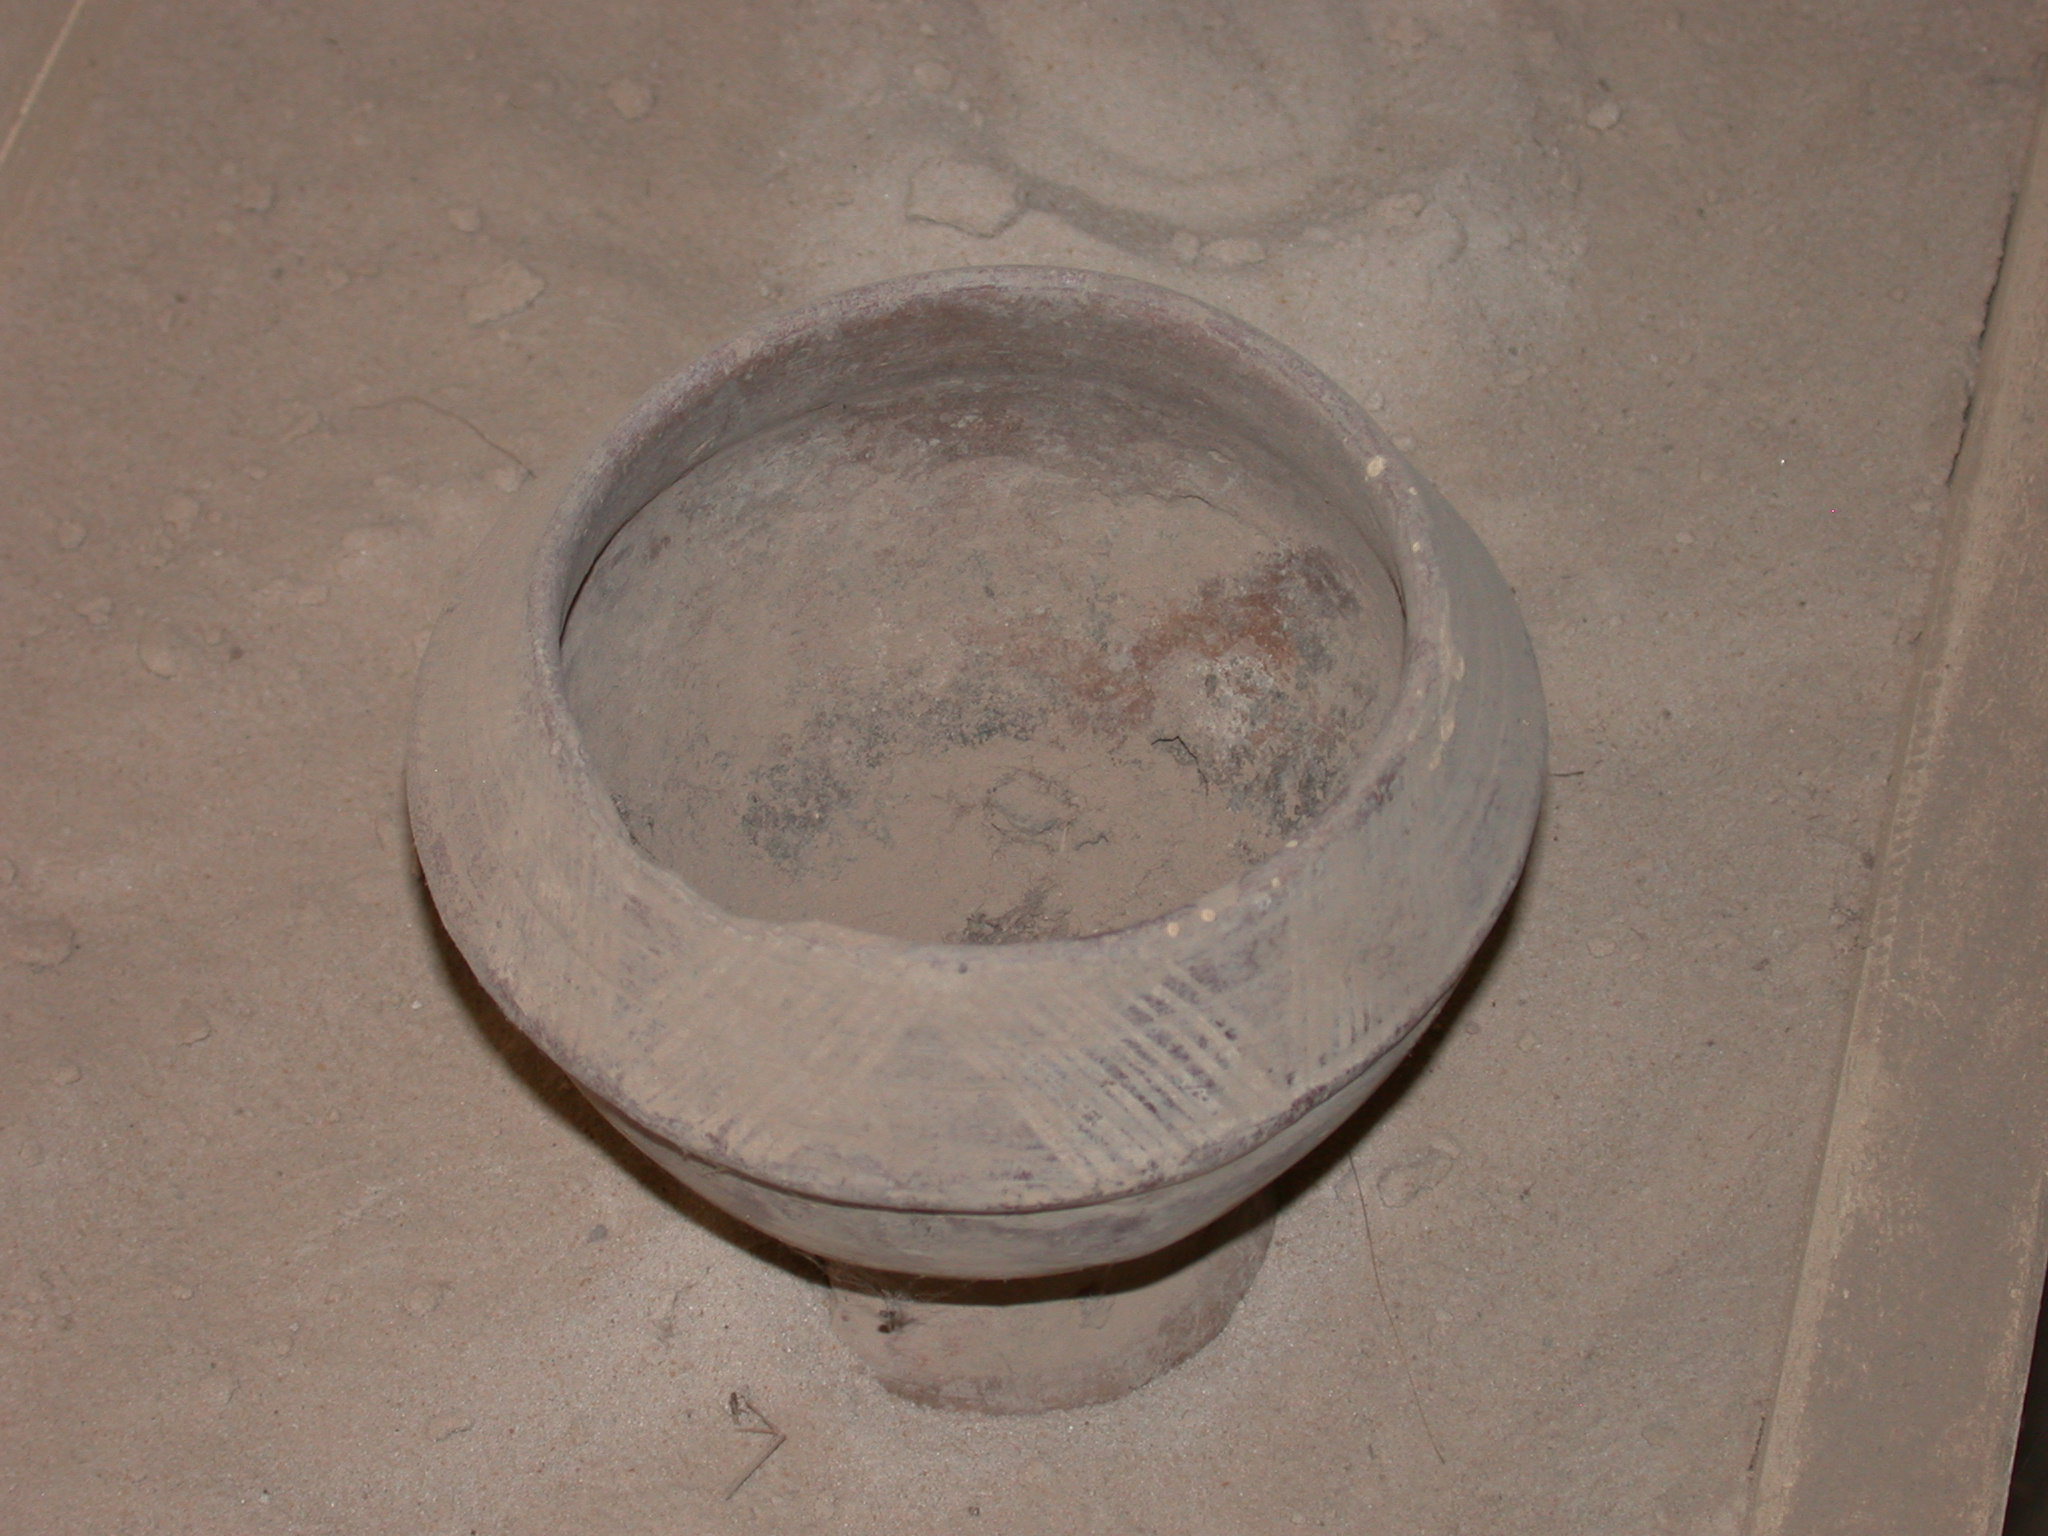 Vase for Washing, Timbuktu Ethnological Museum, Timbuktu, Mali